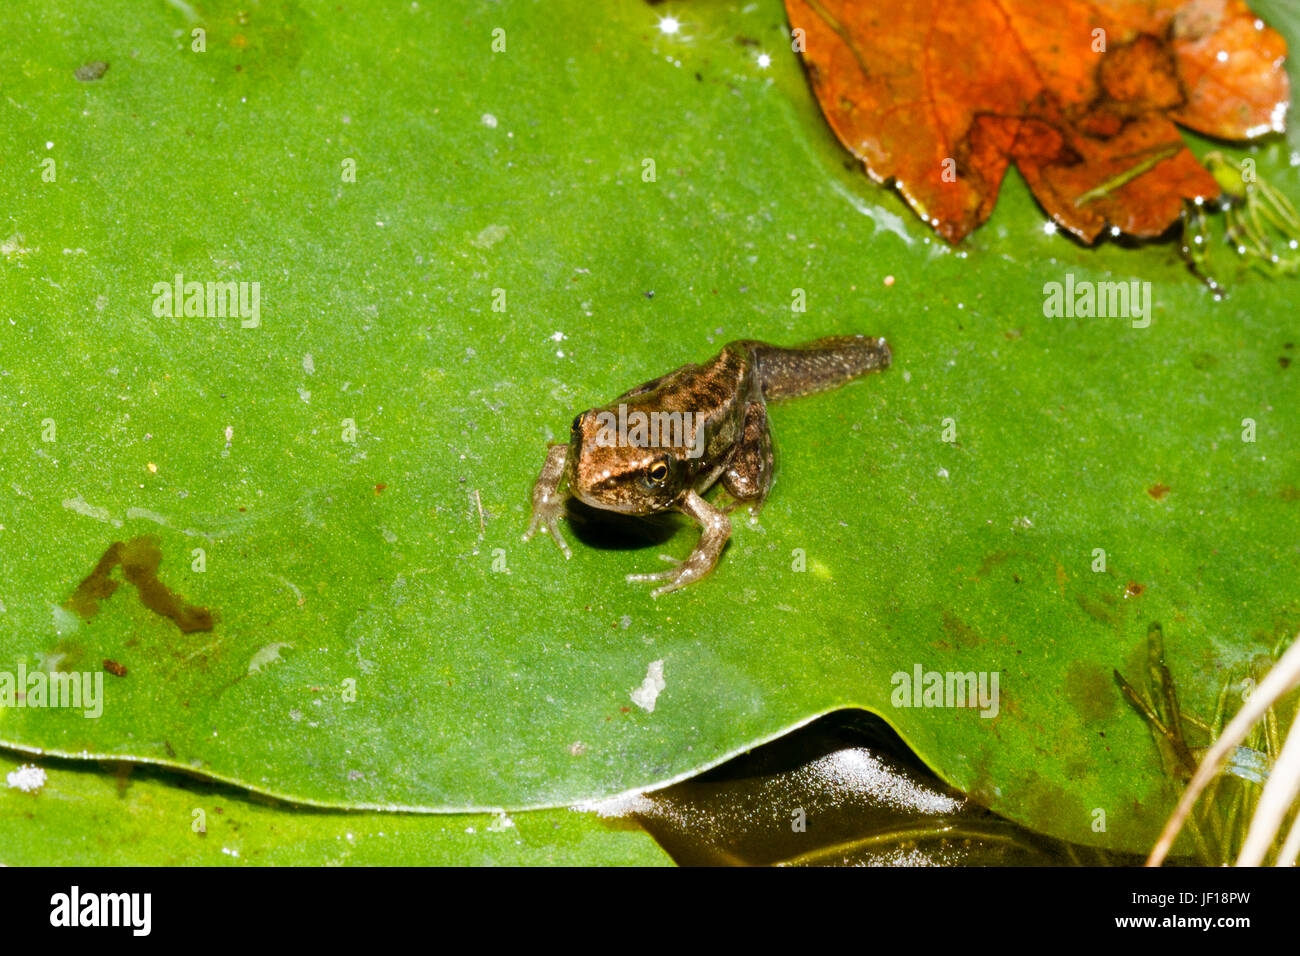 Froglet of the Common Frog (Rana temporaria) on a lily pad in a garden pond, East Sussex, UK Stock Photo